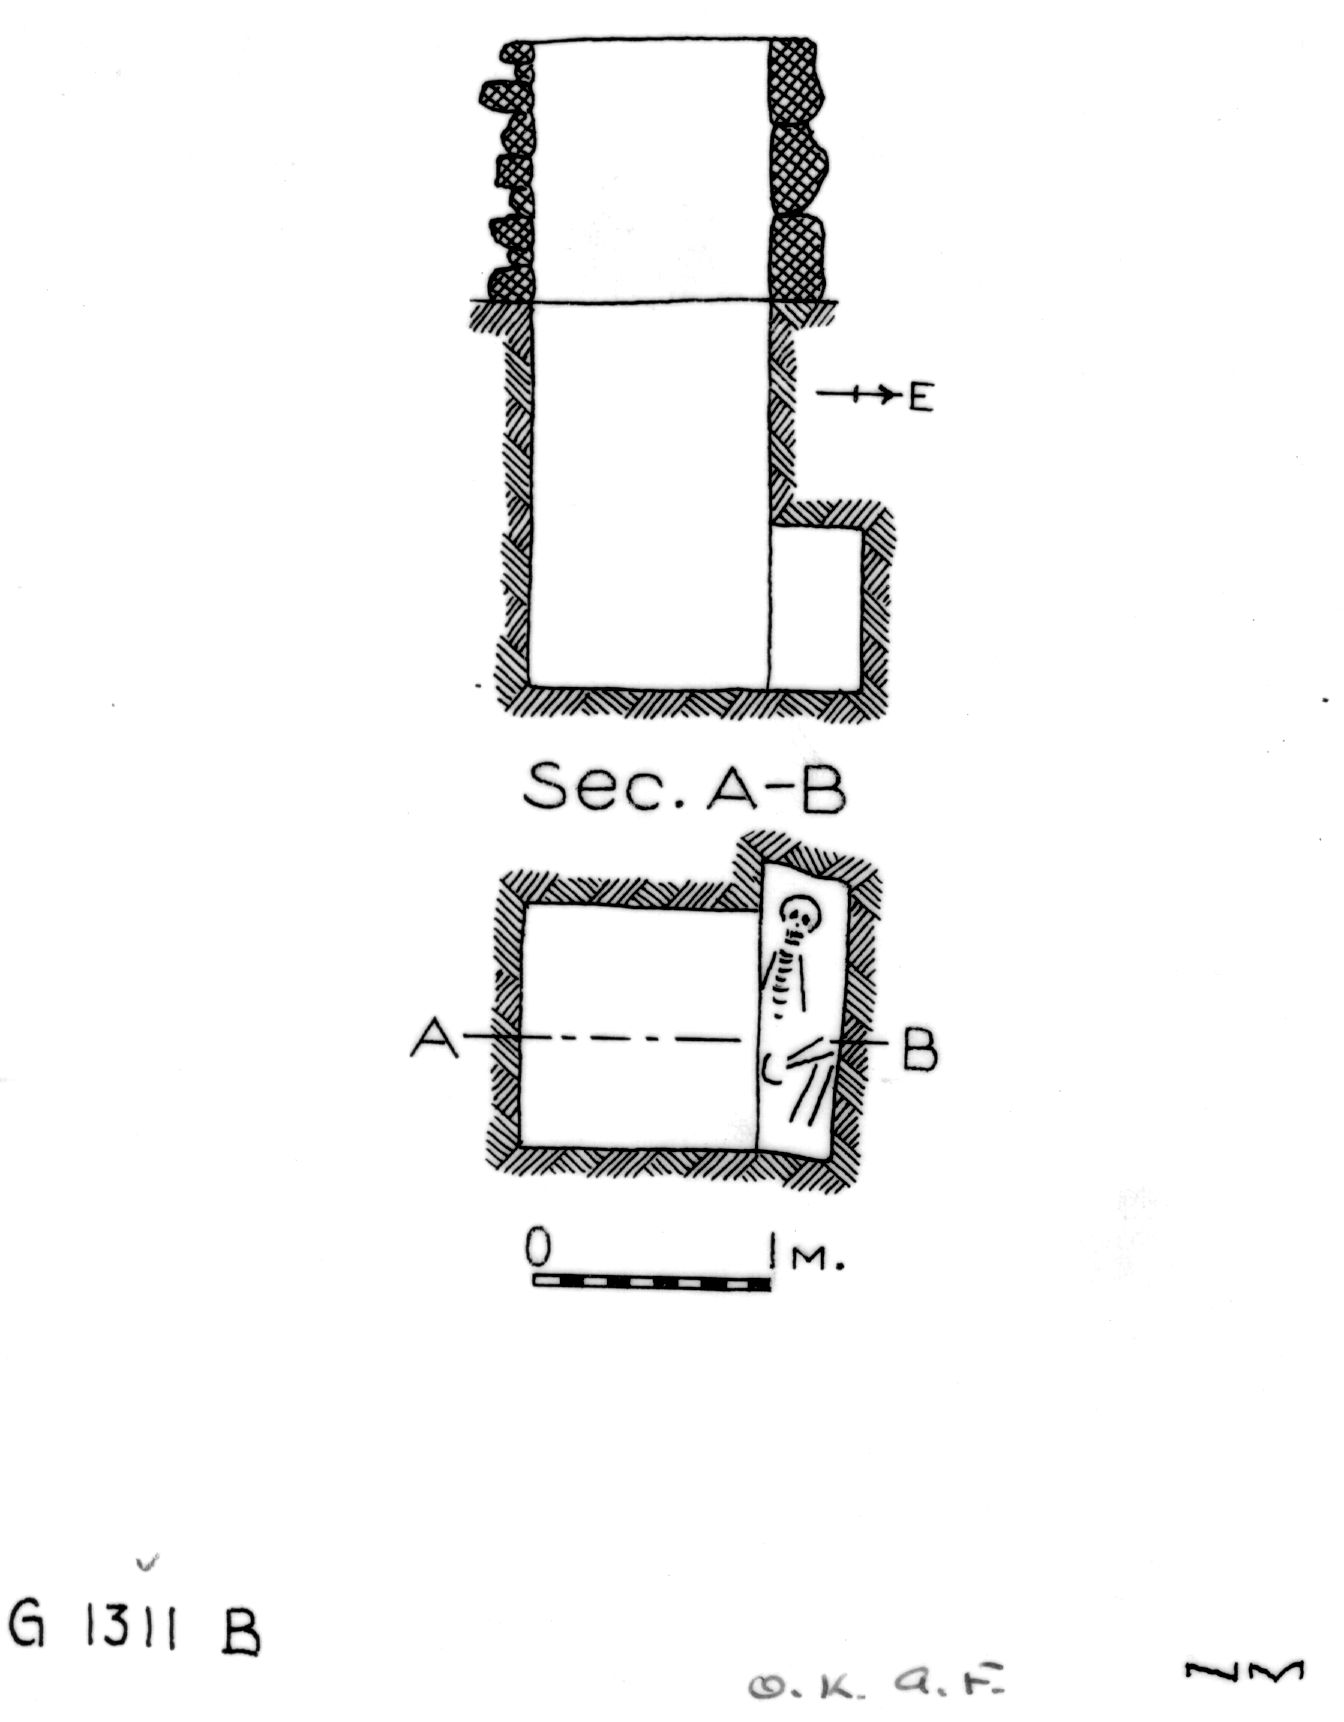 Maps and plans: G 1311, Shaft B